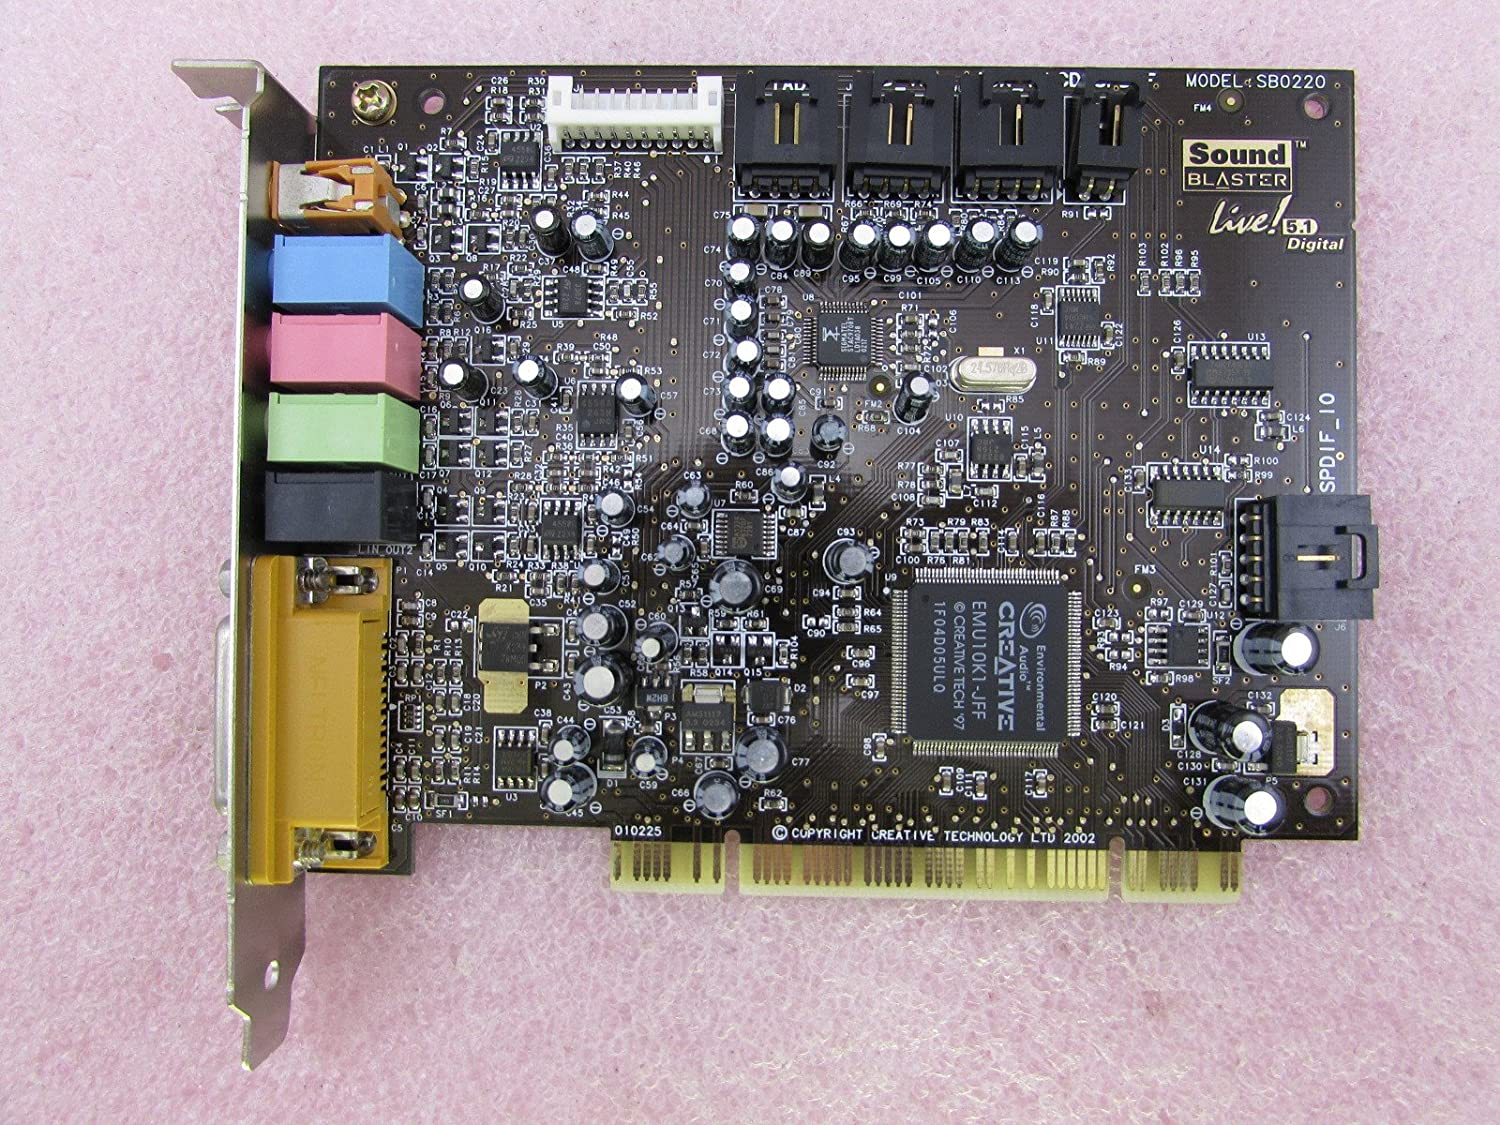 SOUND BLASTER MODEL SB0220 DRIVER FOR MAC